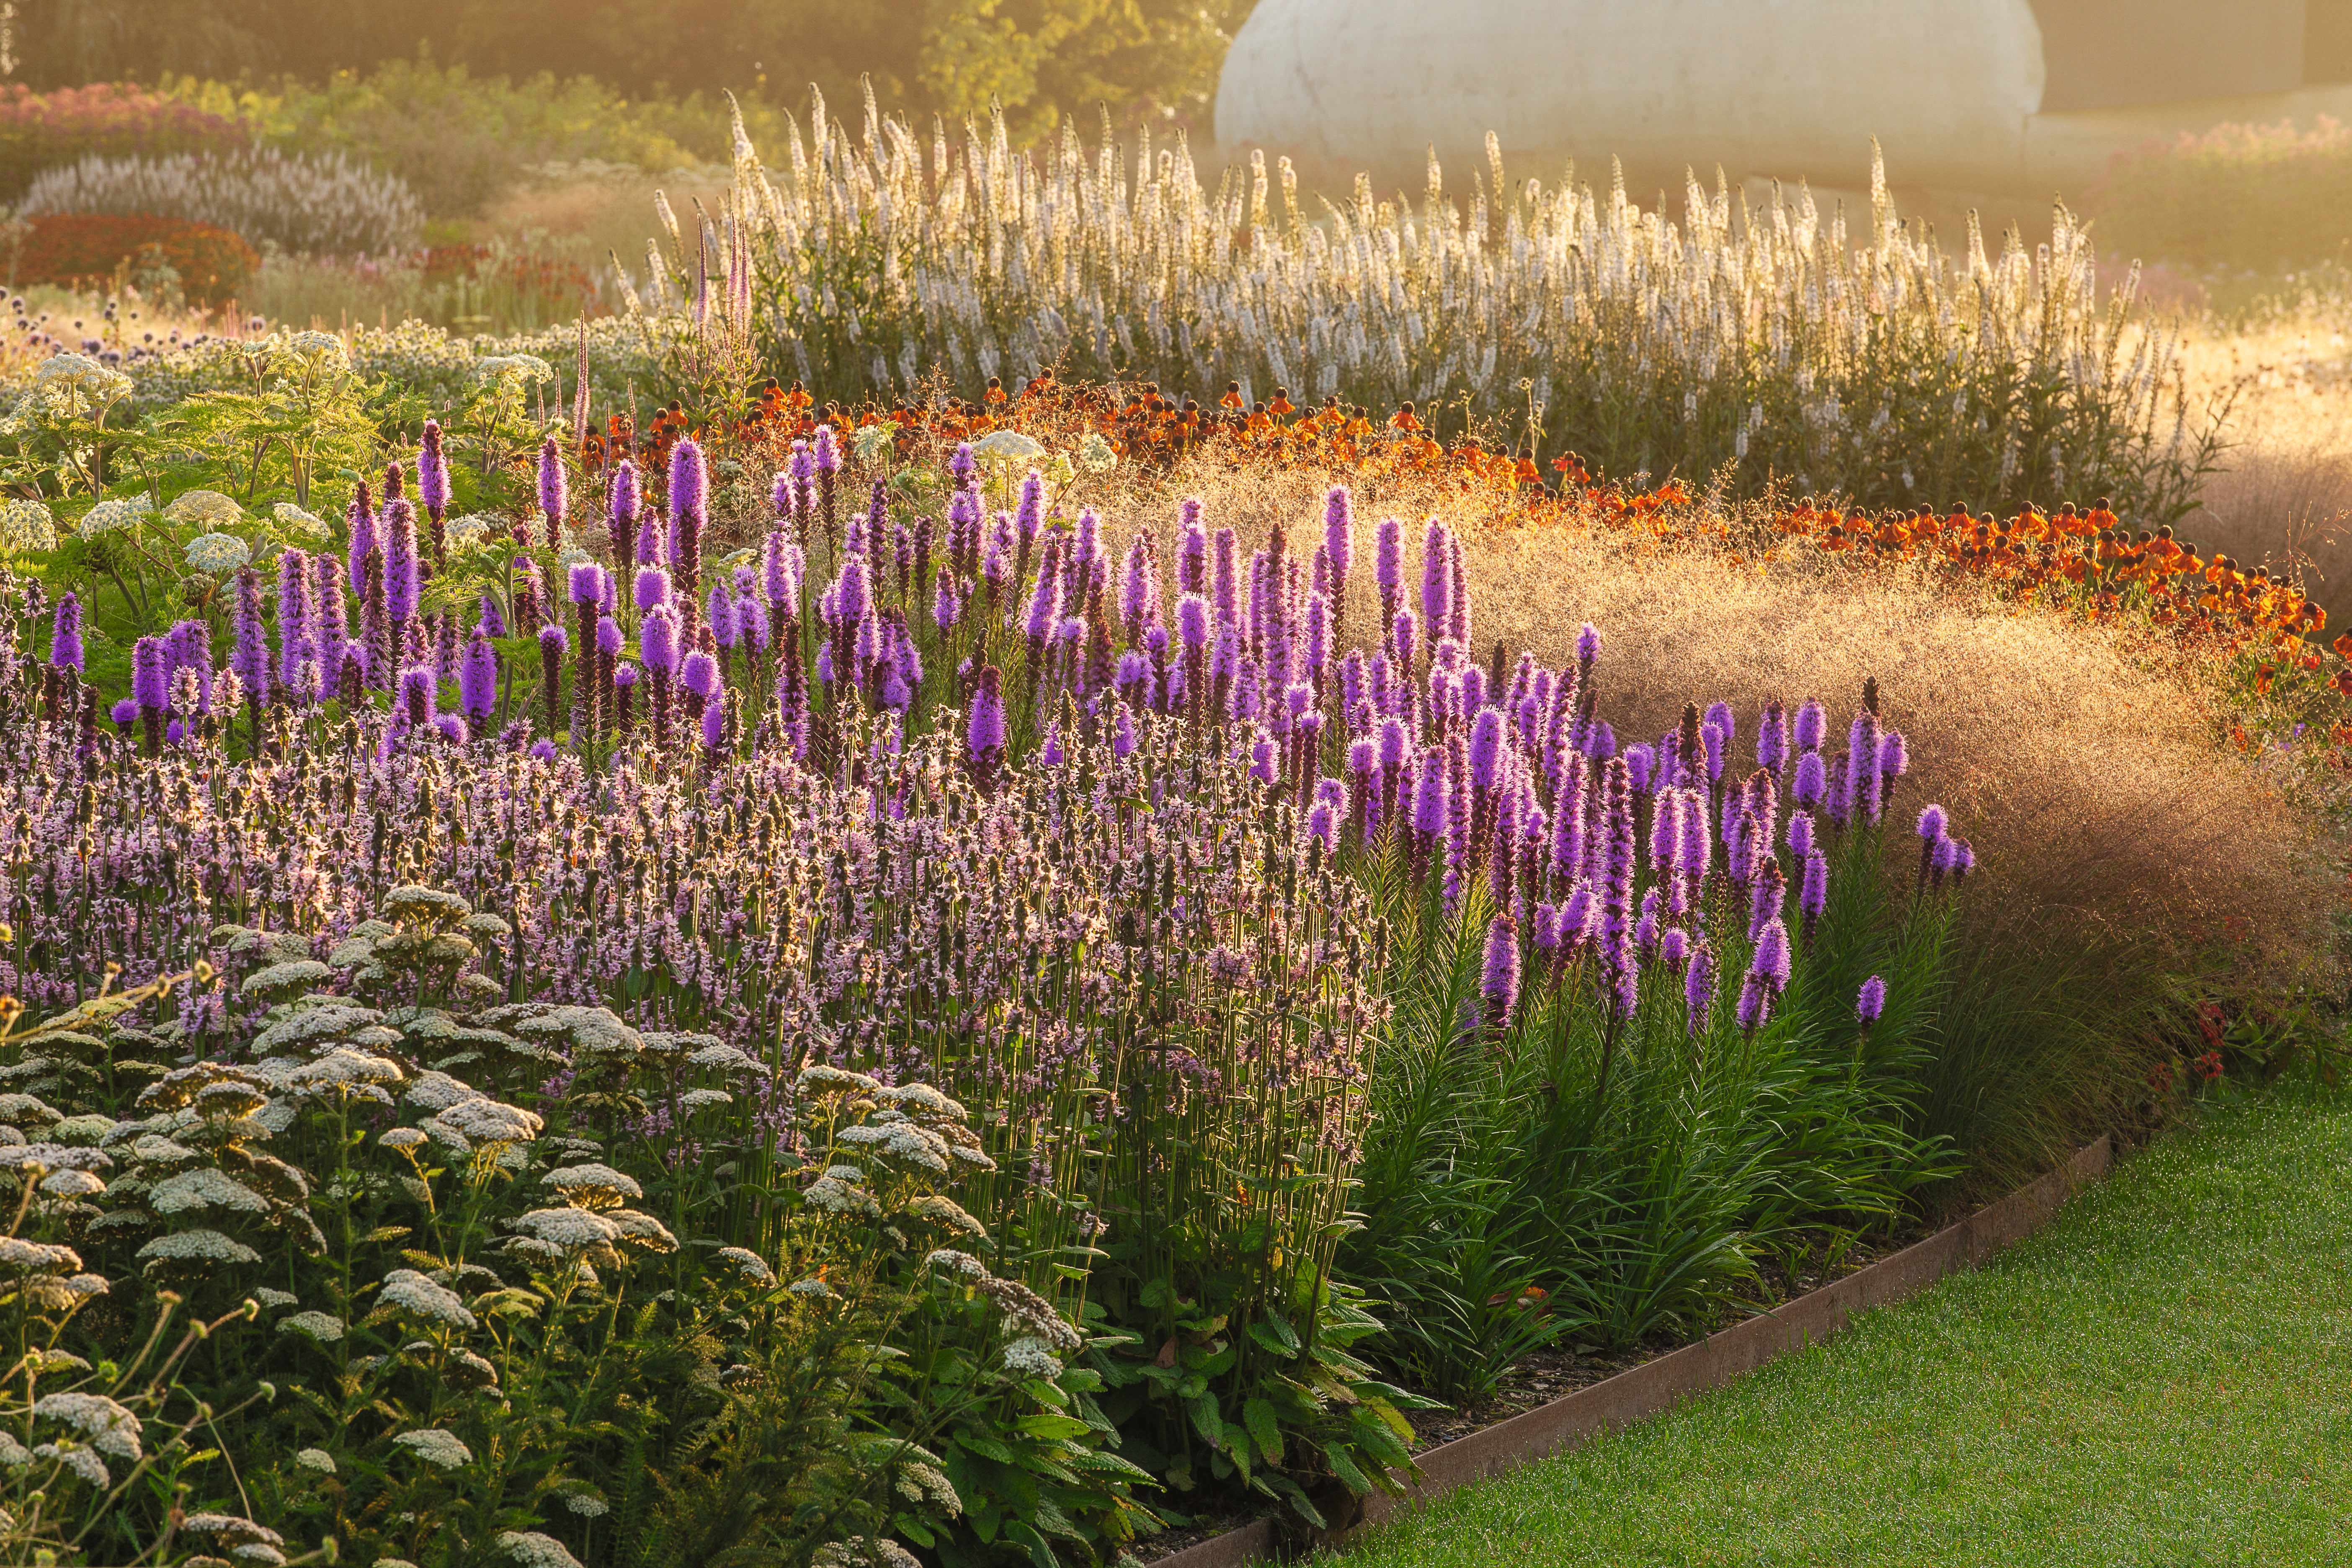 HAUSER & WIRTH, SOMERSET: THE OUDOLF FIELD, DURSLADE FARM - NEW PERENNIAL BORDER AT SUNRISE BY PIET OUDOLF - LIATRIS SPICATA, HELENIUM MOERHEIM BEAUTY